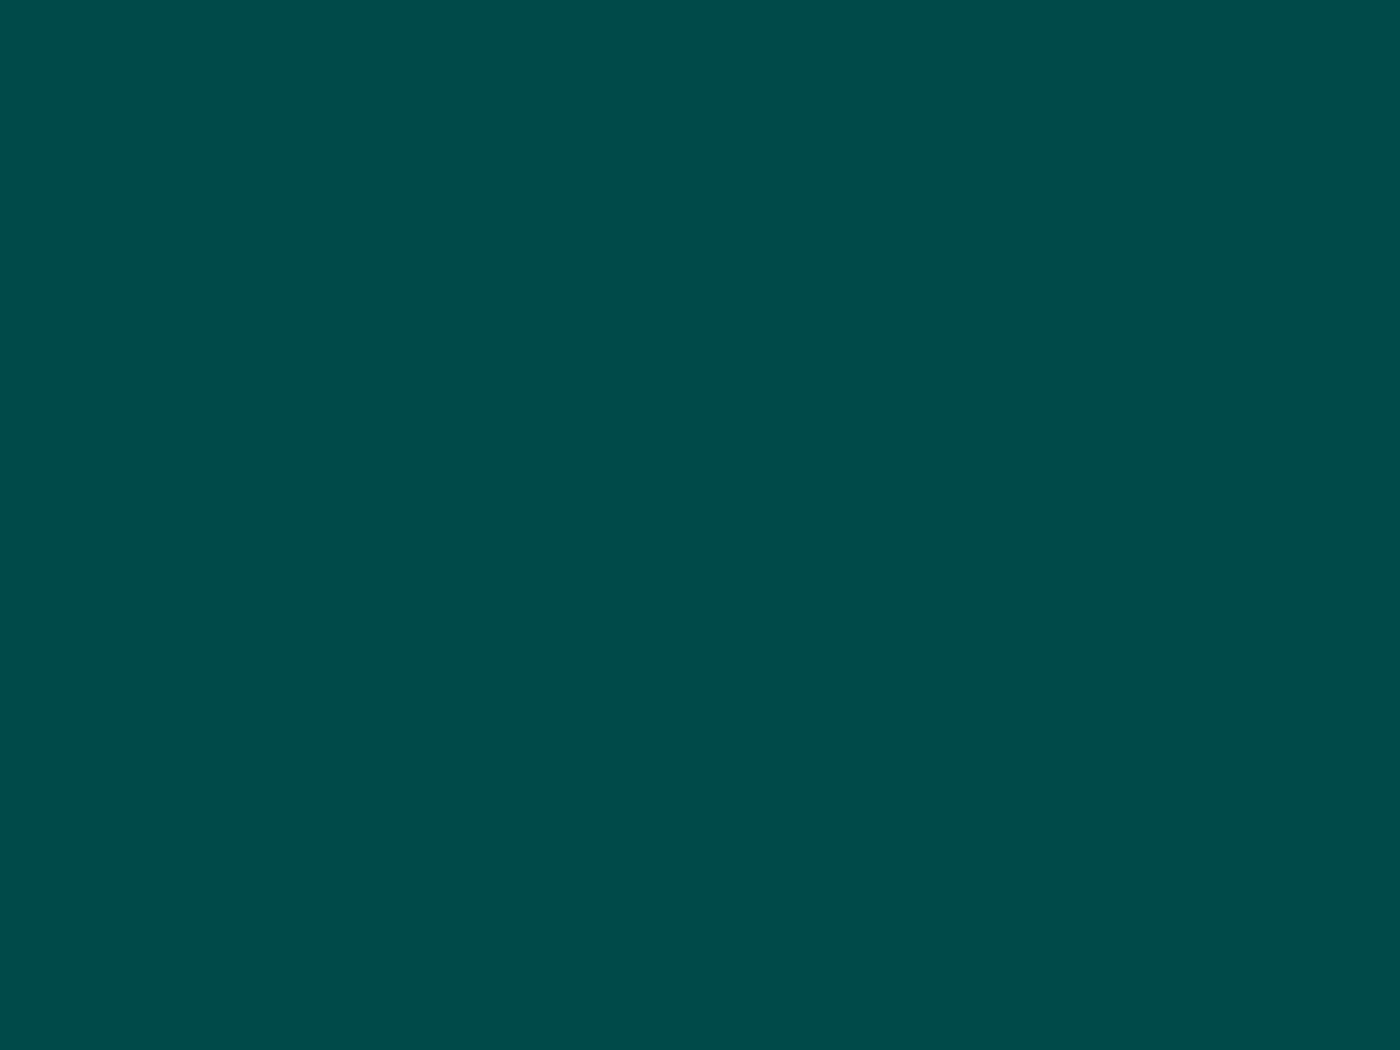 1400x1050 Deep Jungle Green Solid Color Background